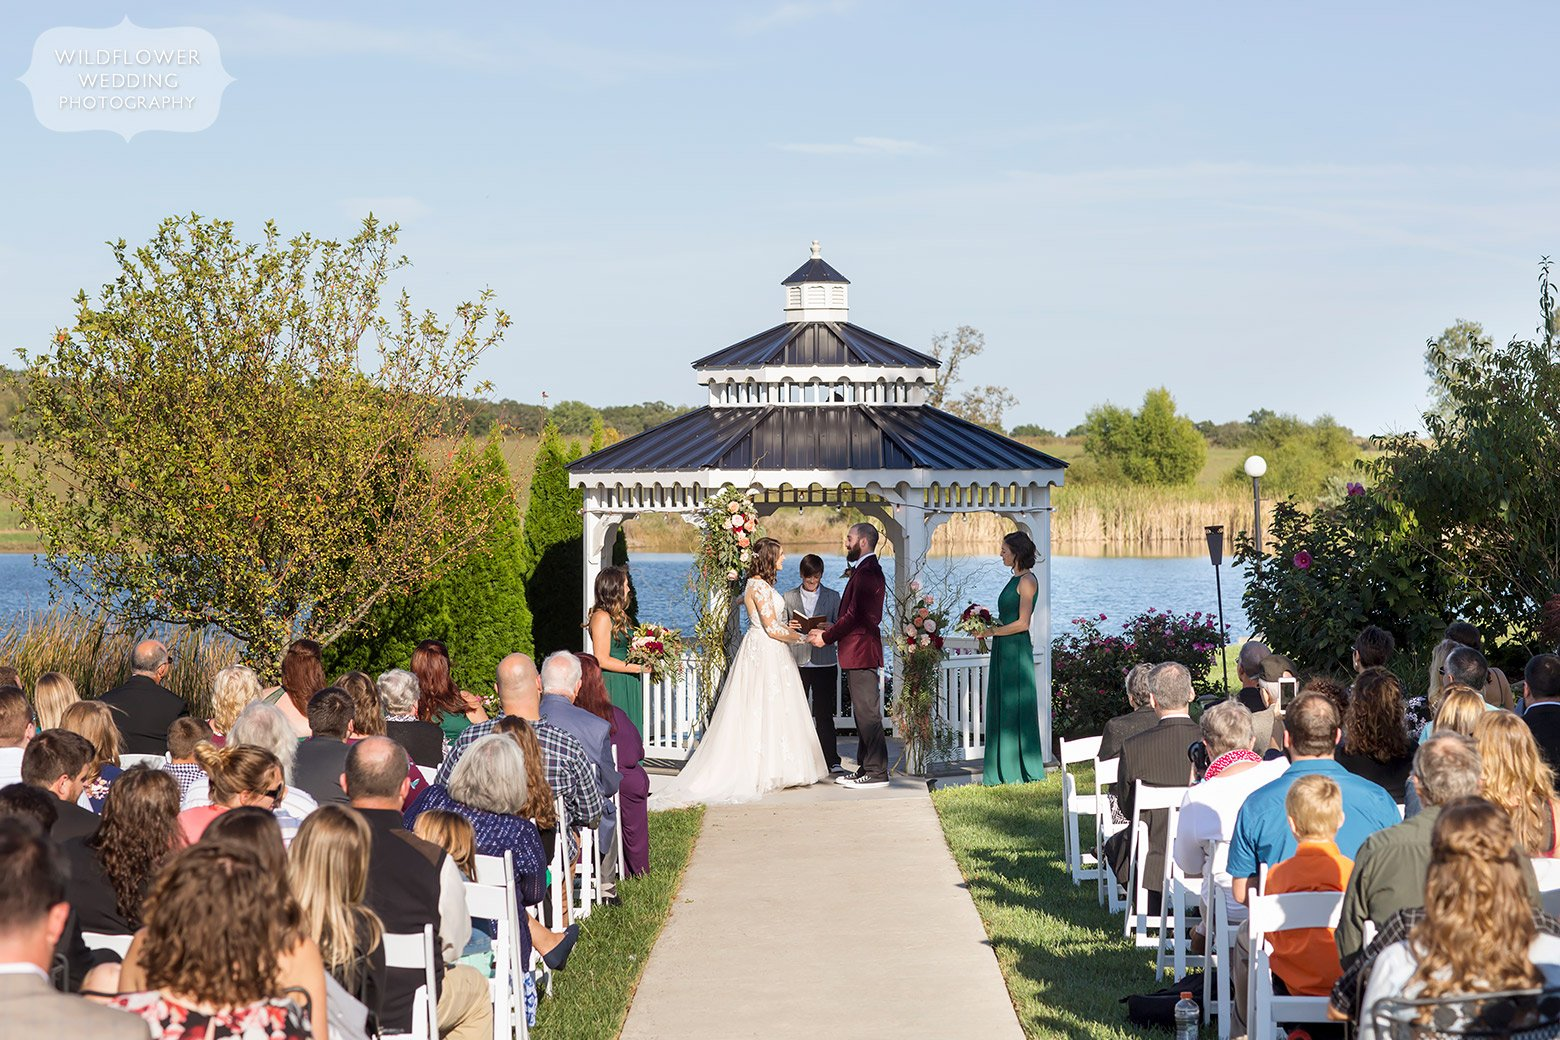 Bride and groom are married under gazebo at Serenity Valley Winery.